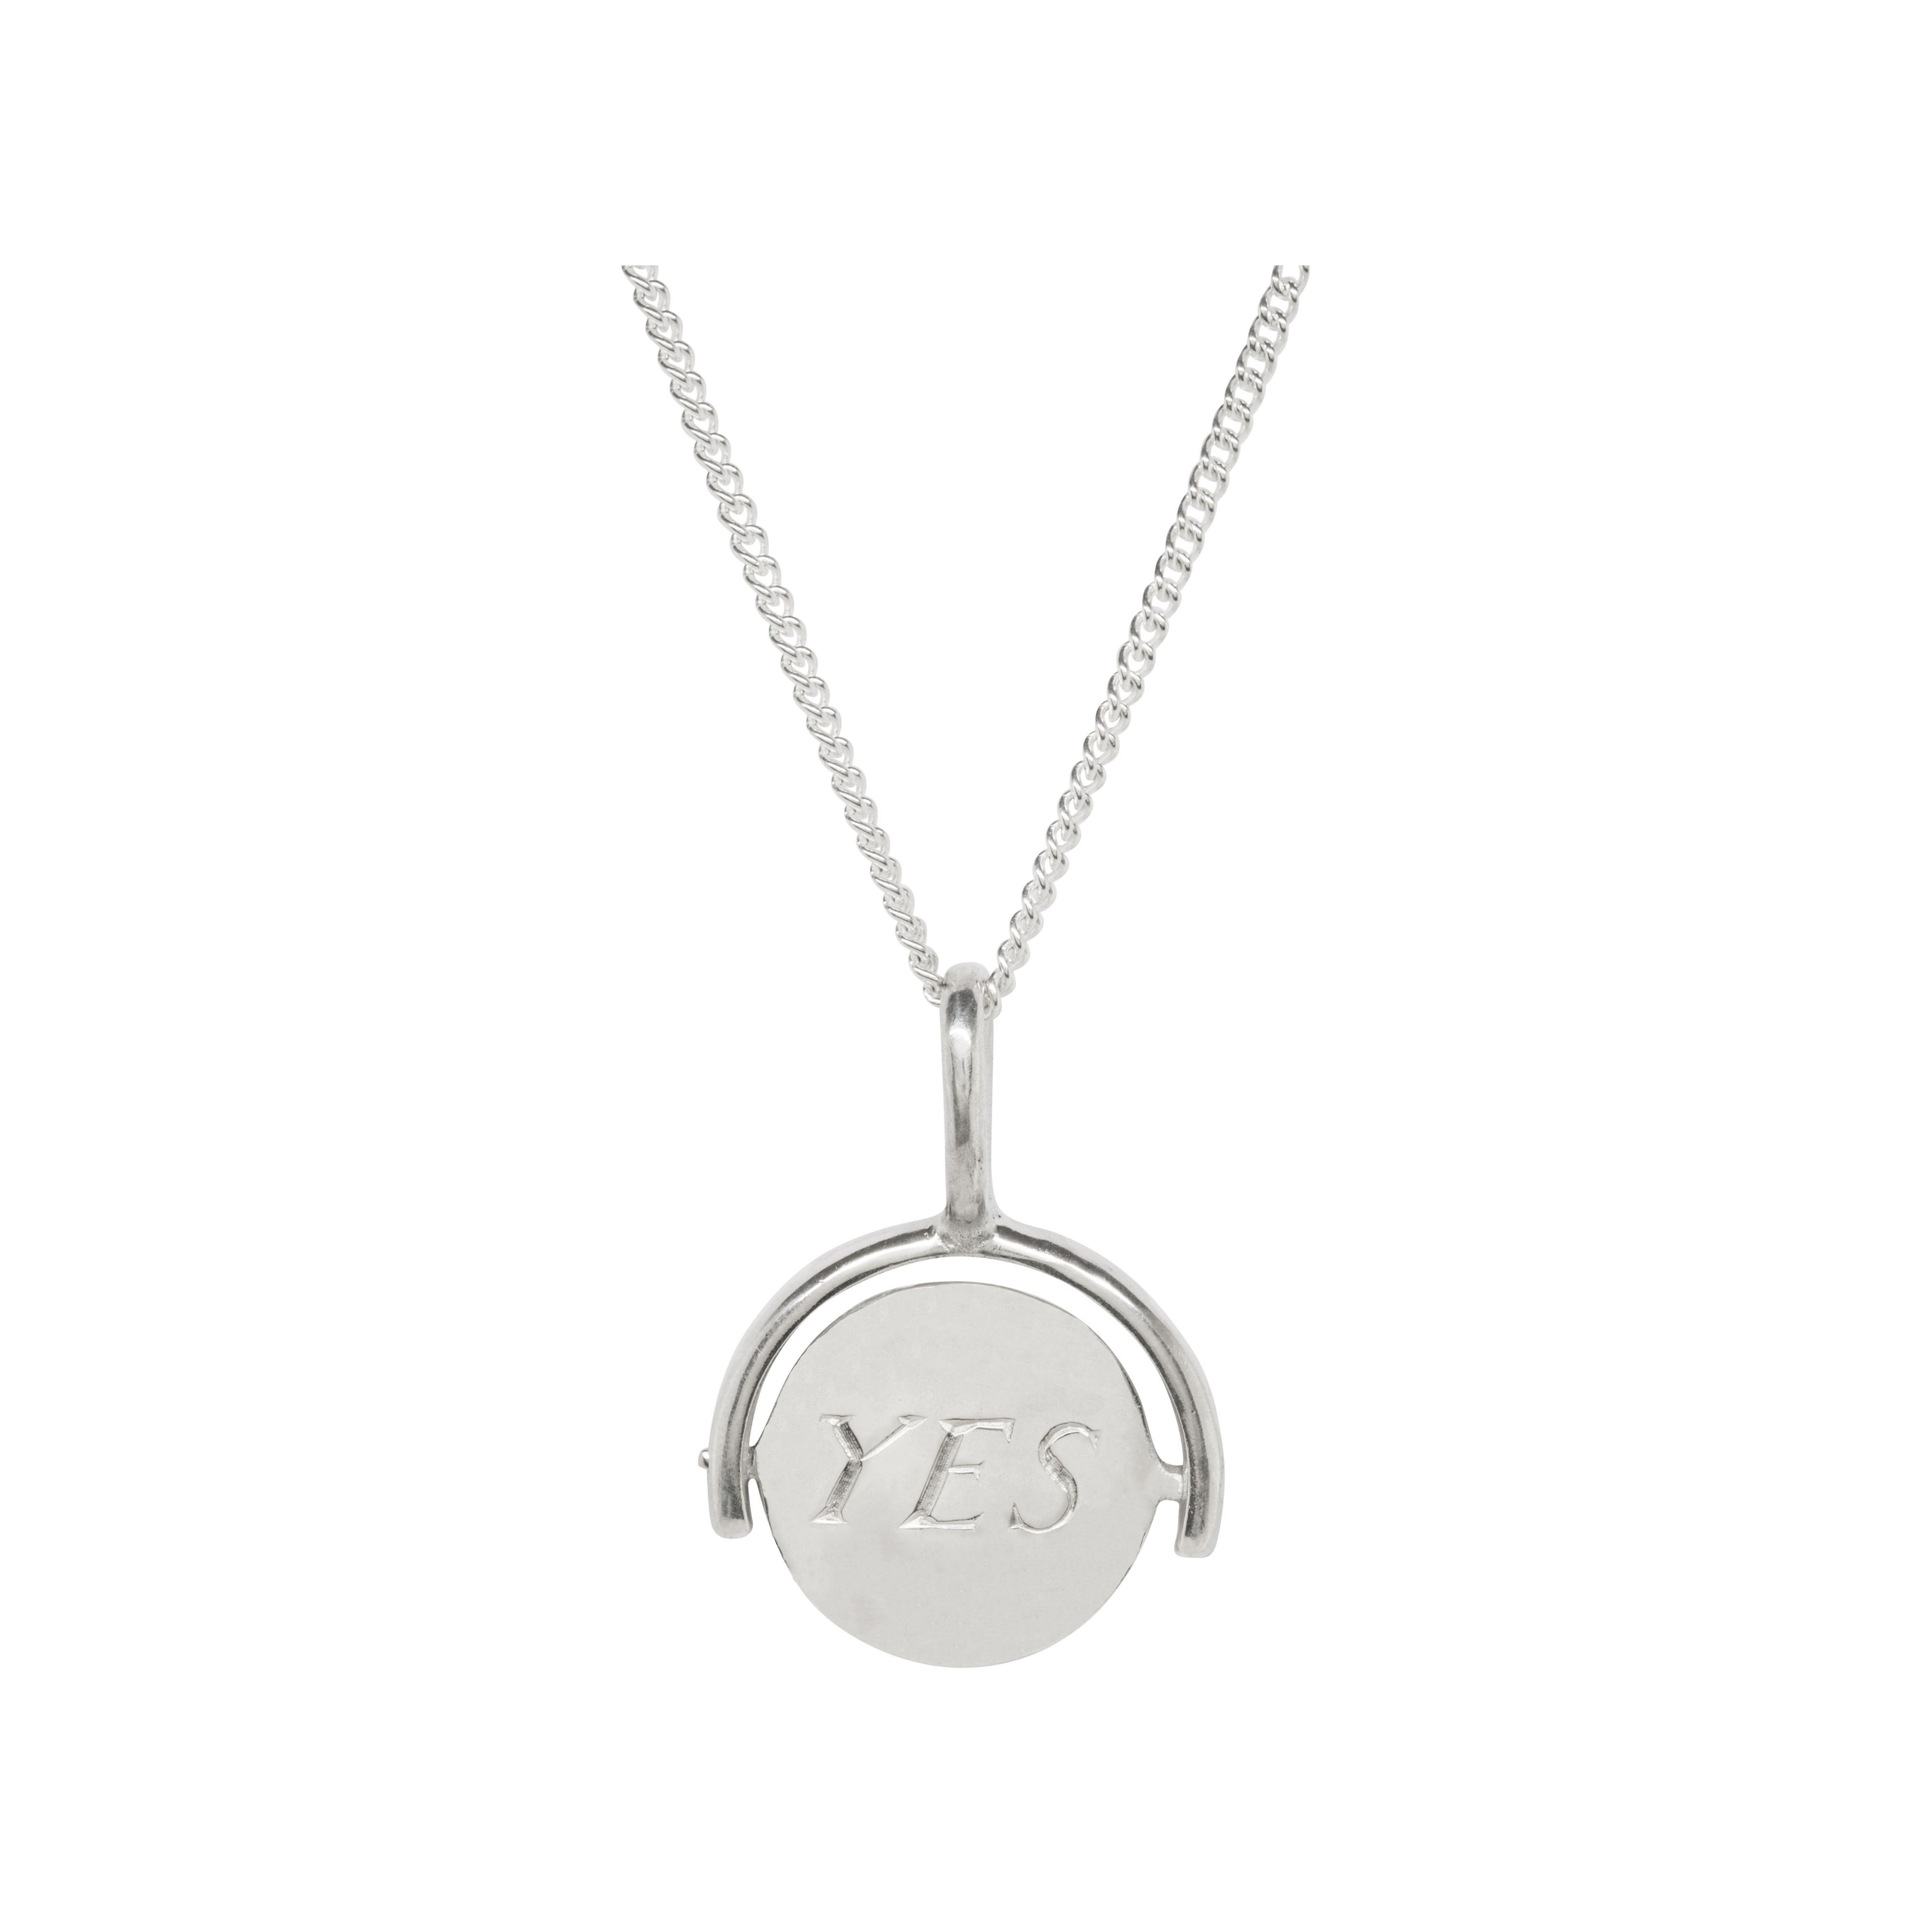 Katie Mullally Lobster Silver Charm HTfMwXP